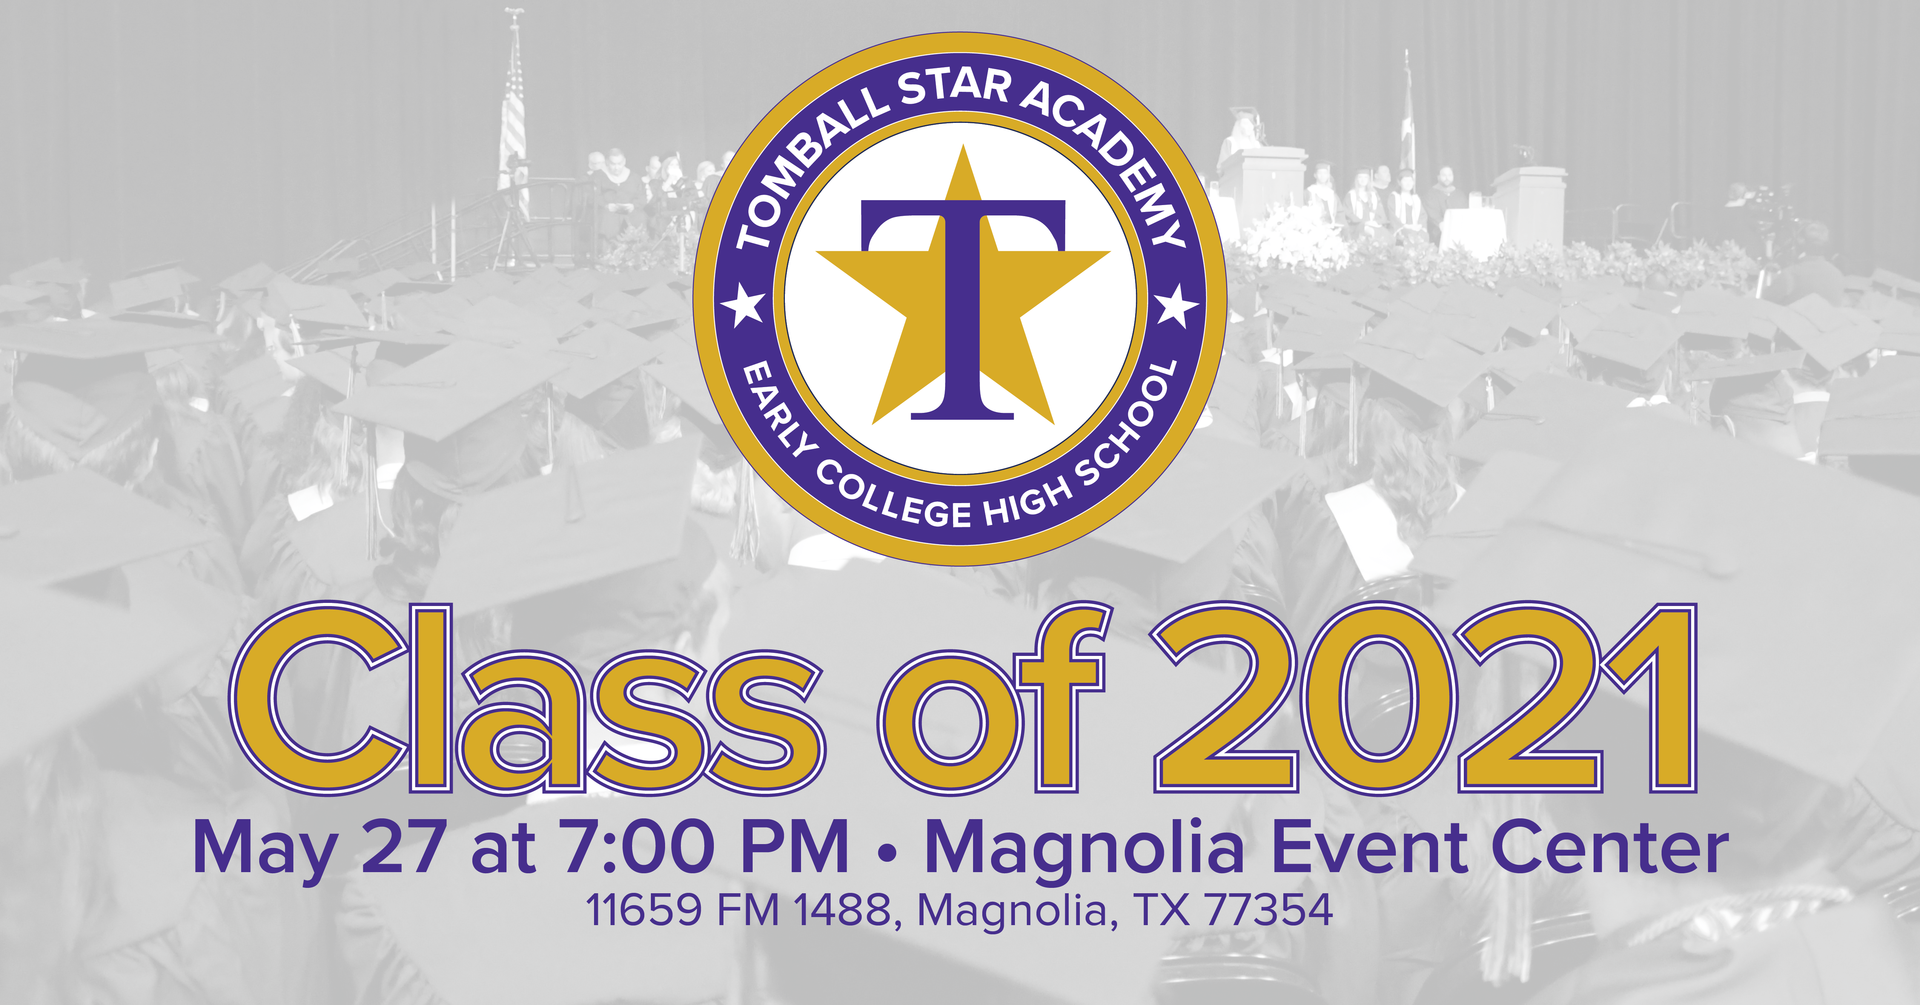 Tomball Star Academy • Early College High School •Class of 2021 Graduation at Magnolia Event Center – 11659 FM 1488, Magnolia, TX 77354